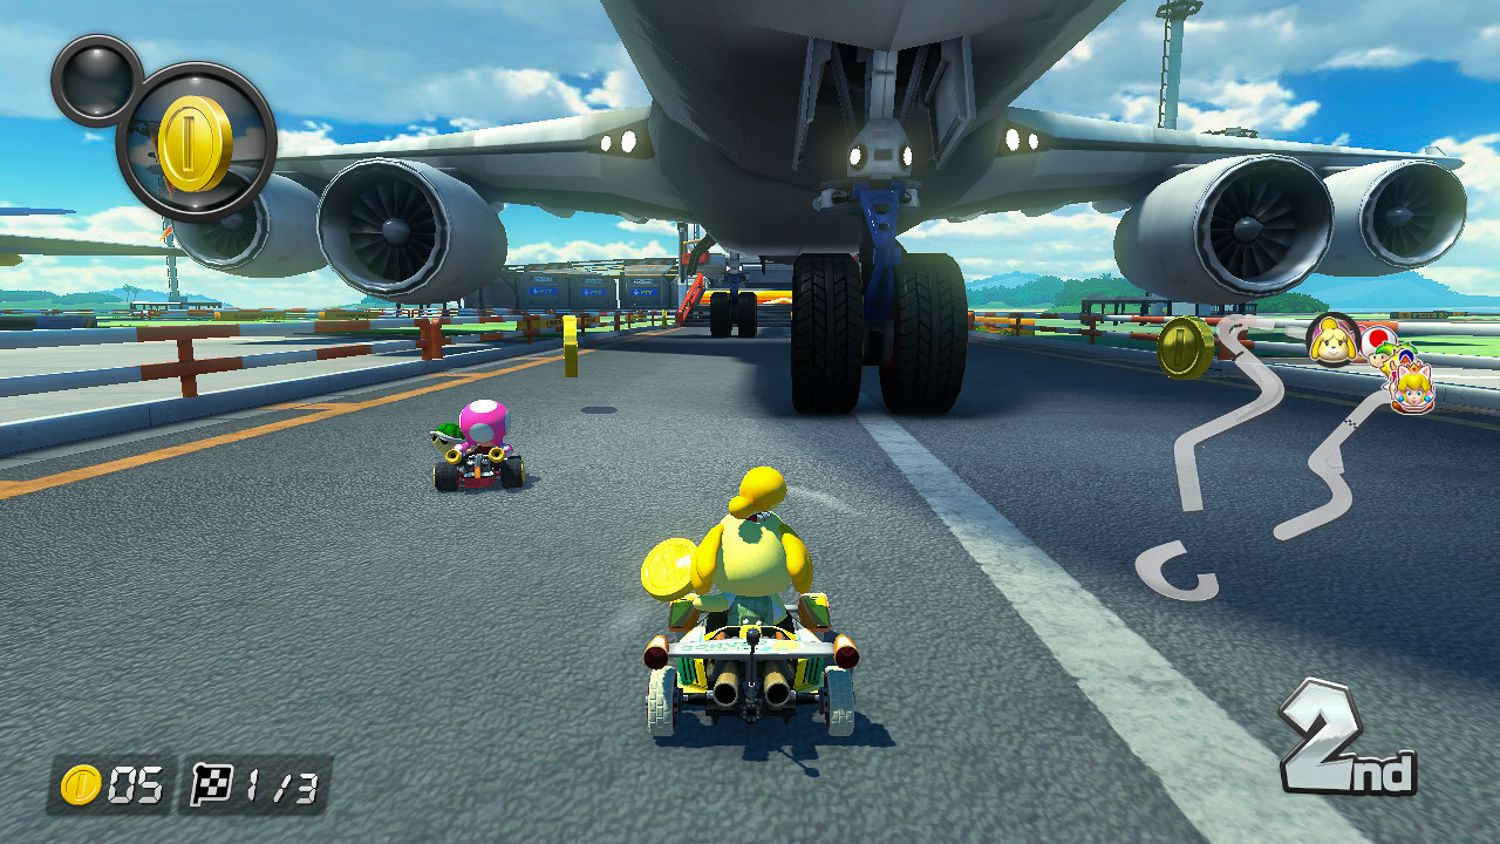 Mario Kart 8 Deluxe Review A Recreated And Updated Classic